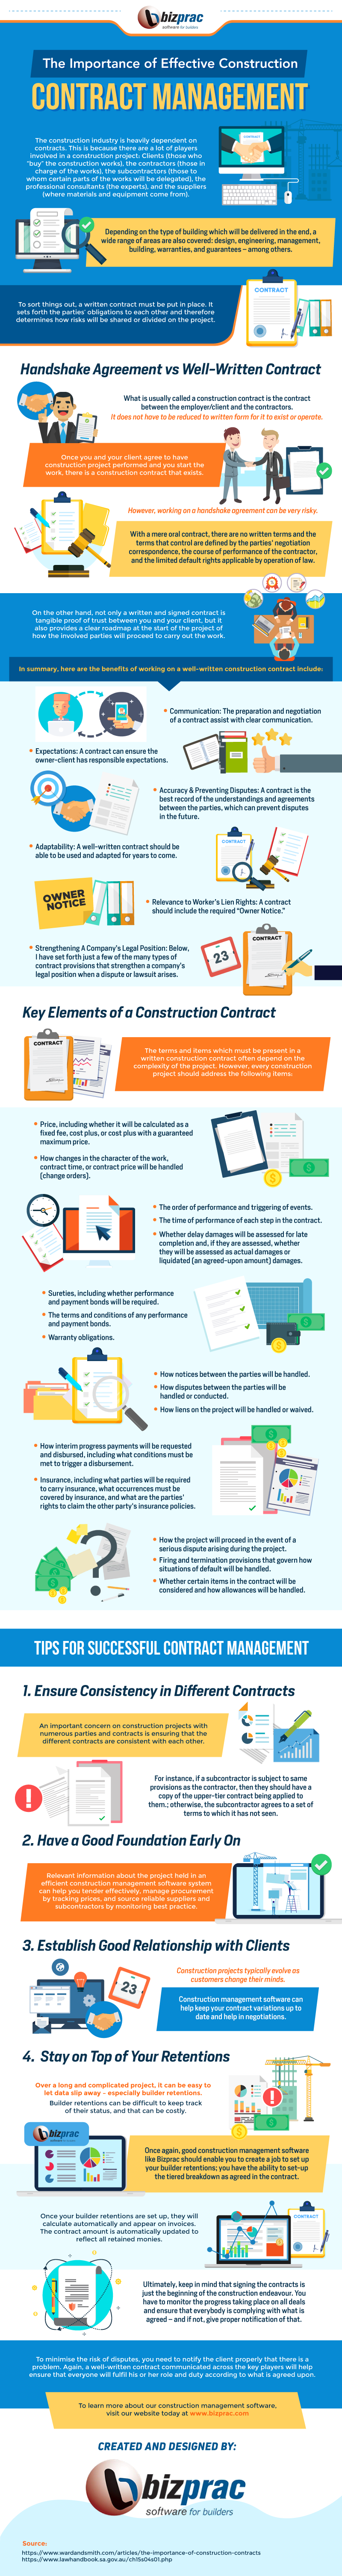 The Importance of Effective Construction Contract Management - Infographic